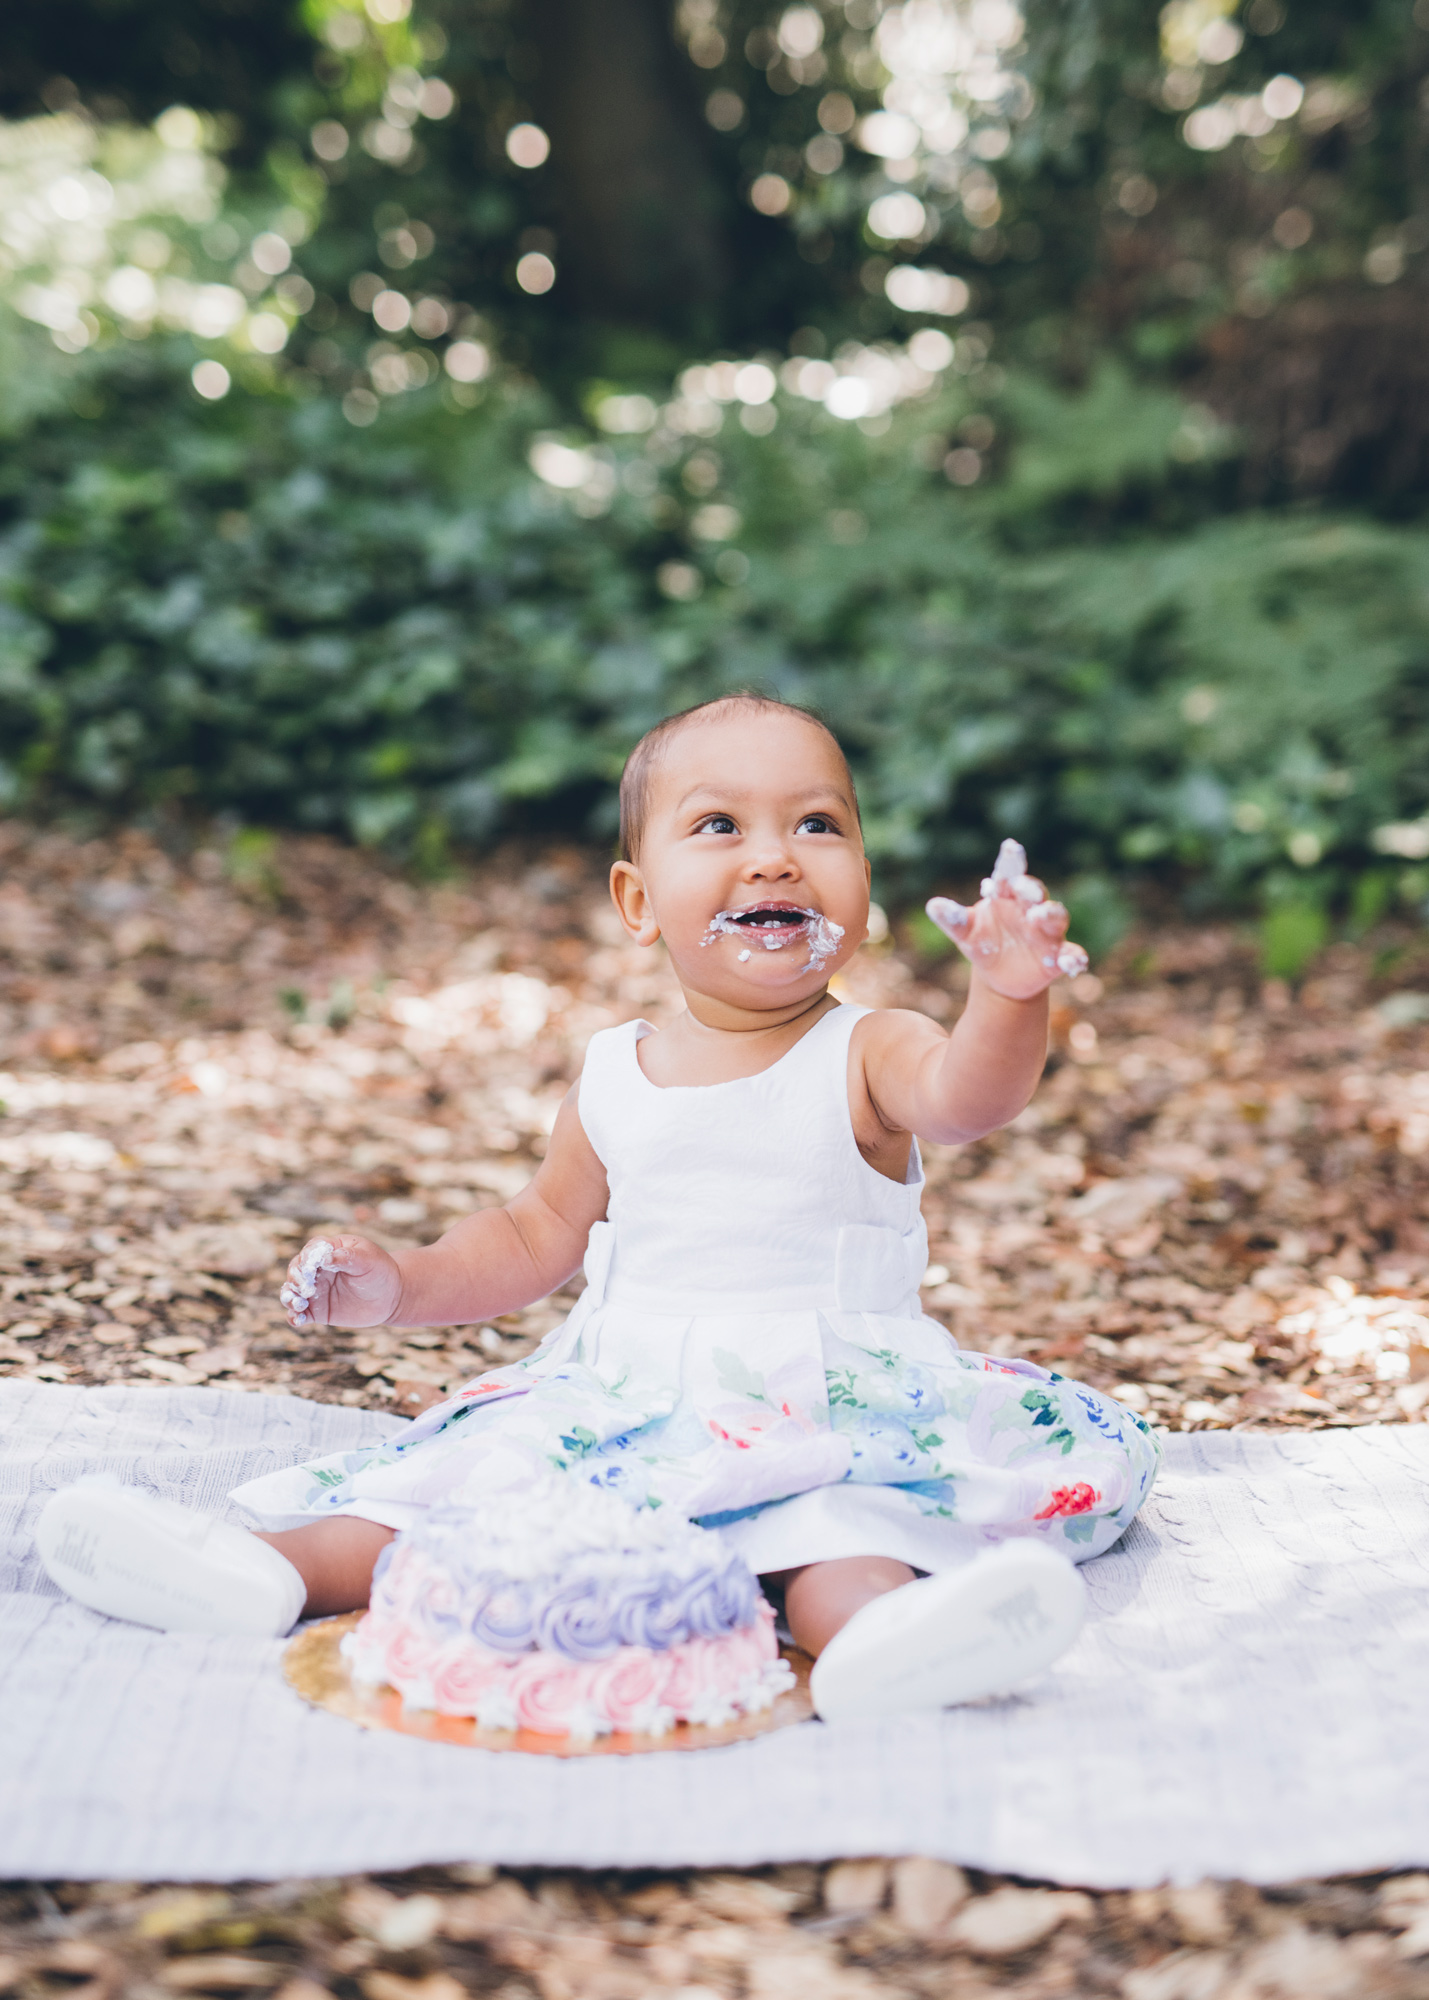 cake-smash-photo-session-for-baby's-first-birthday.jpg